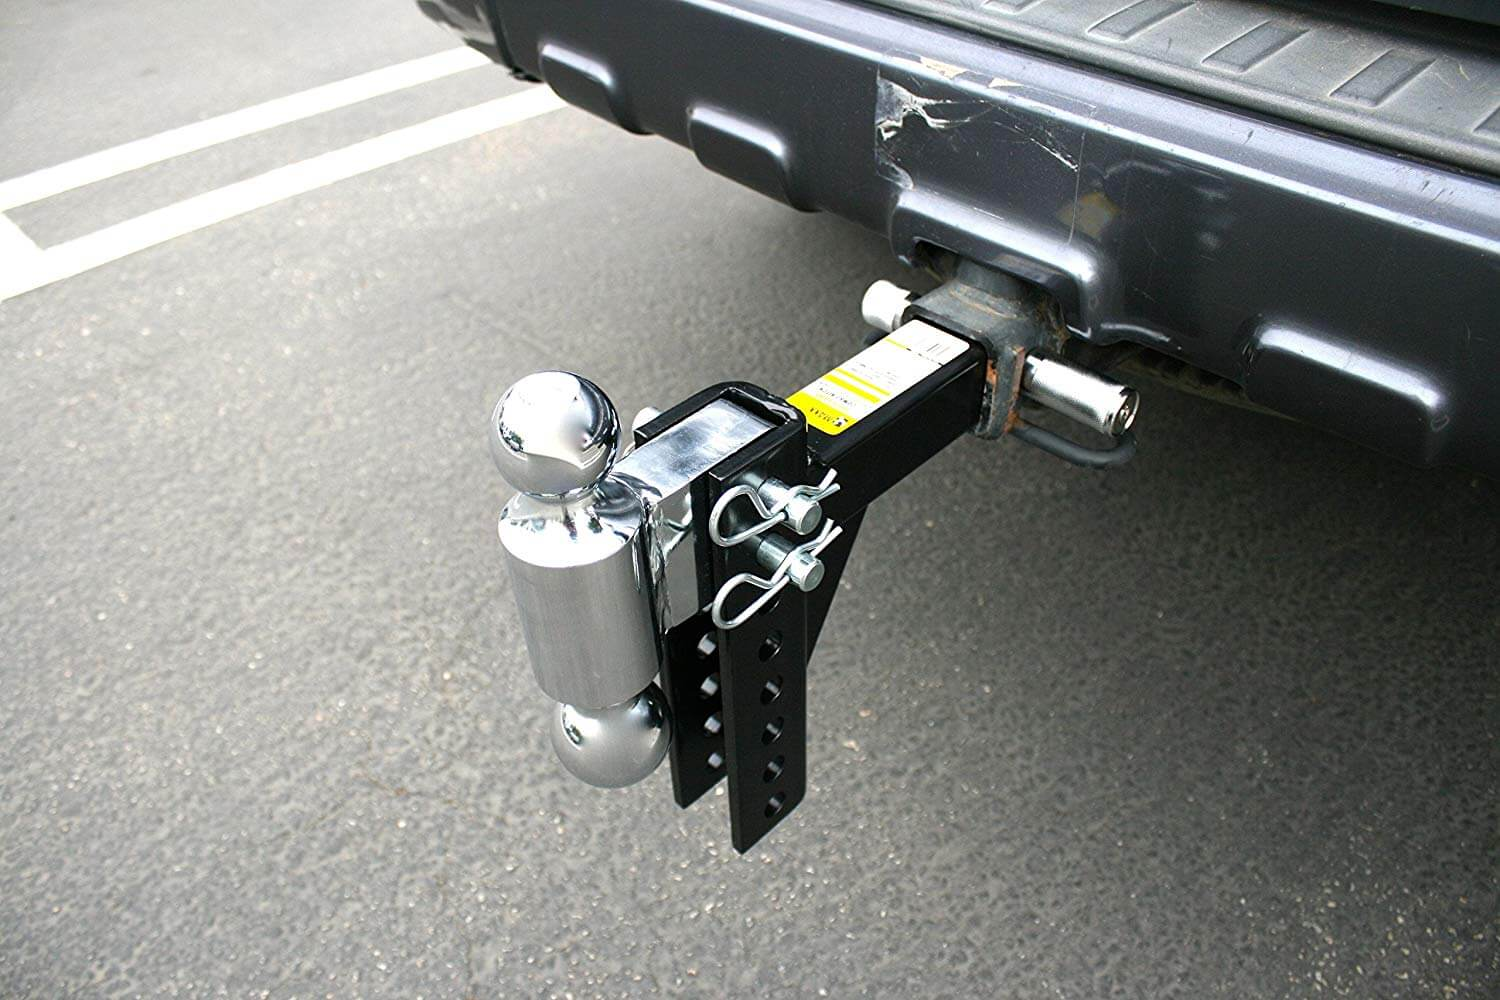 Best Tow Hitches for Caravan 2020